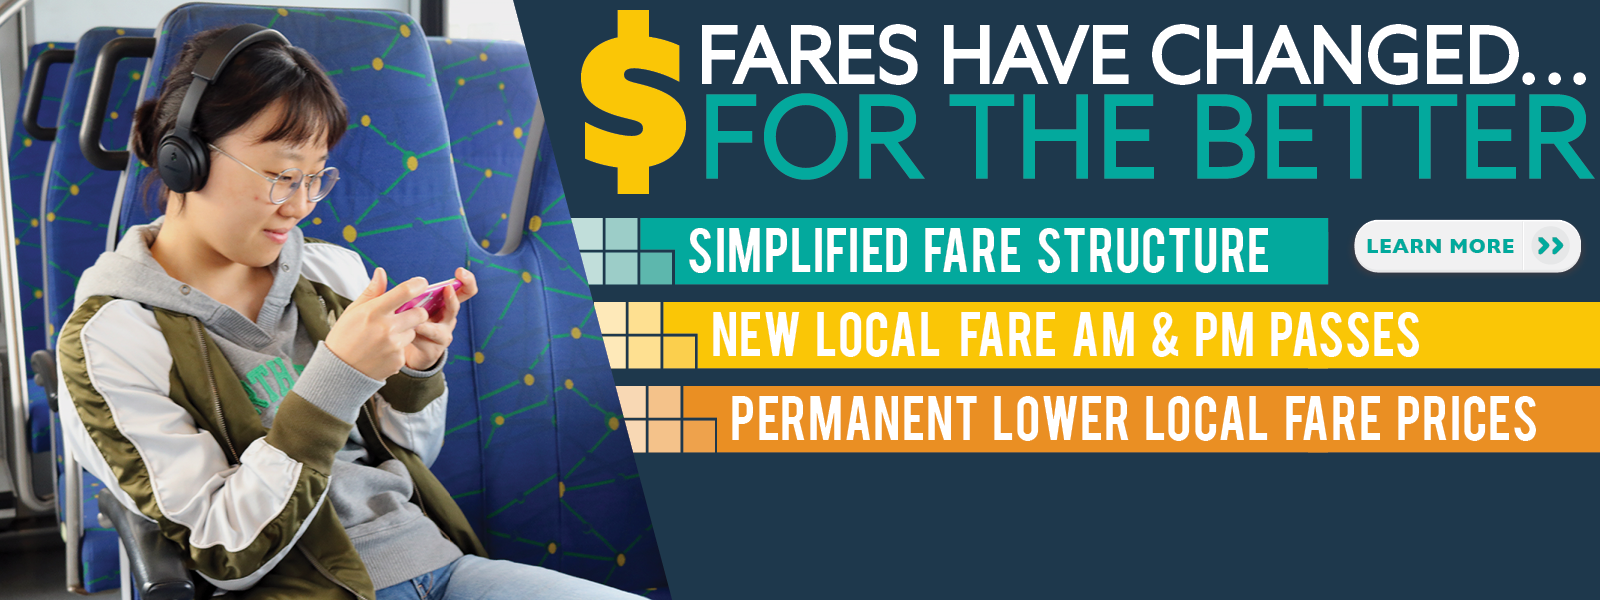 Fares Have changed for the better